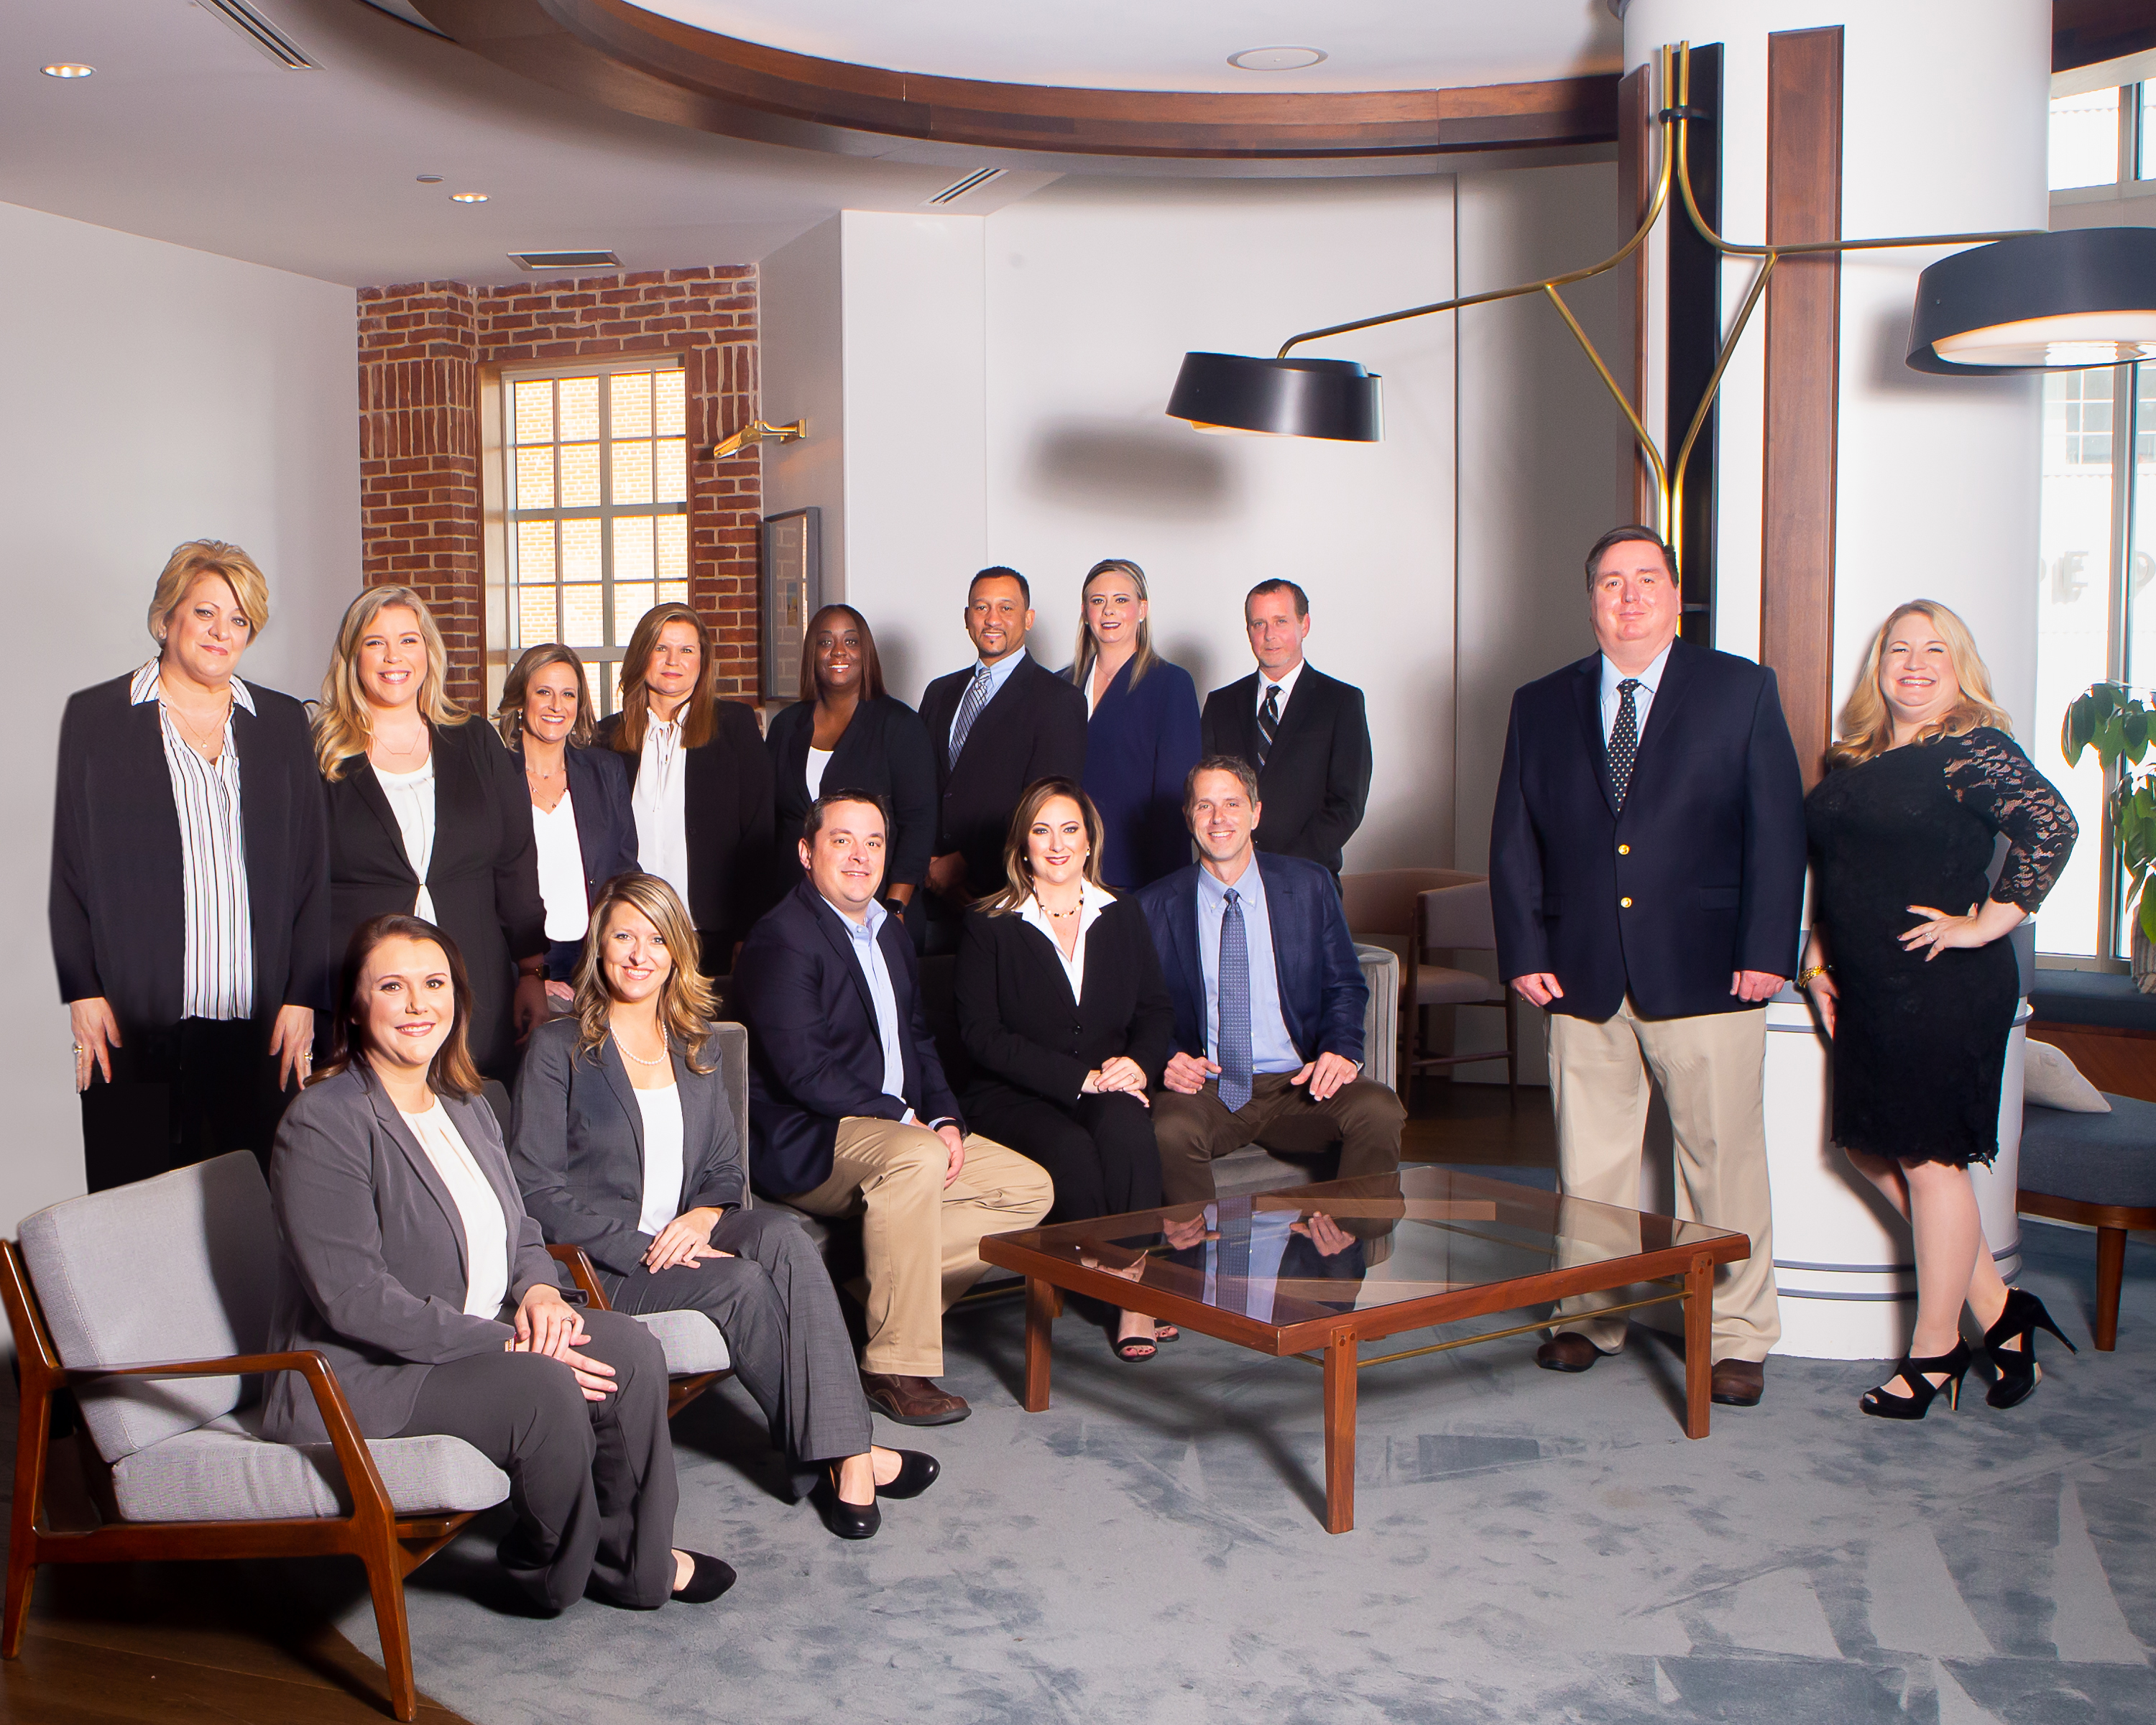 group_professional_portrait_picture_matt_boyd_atlanta_business